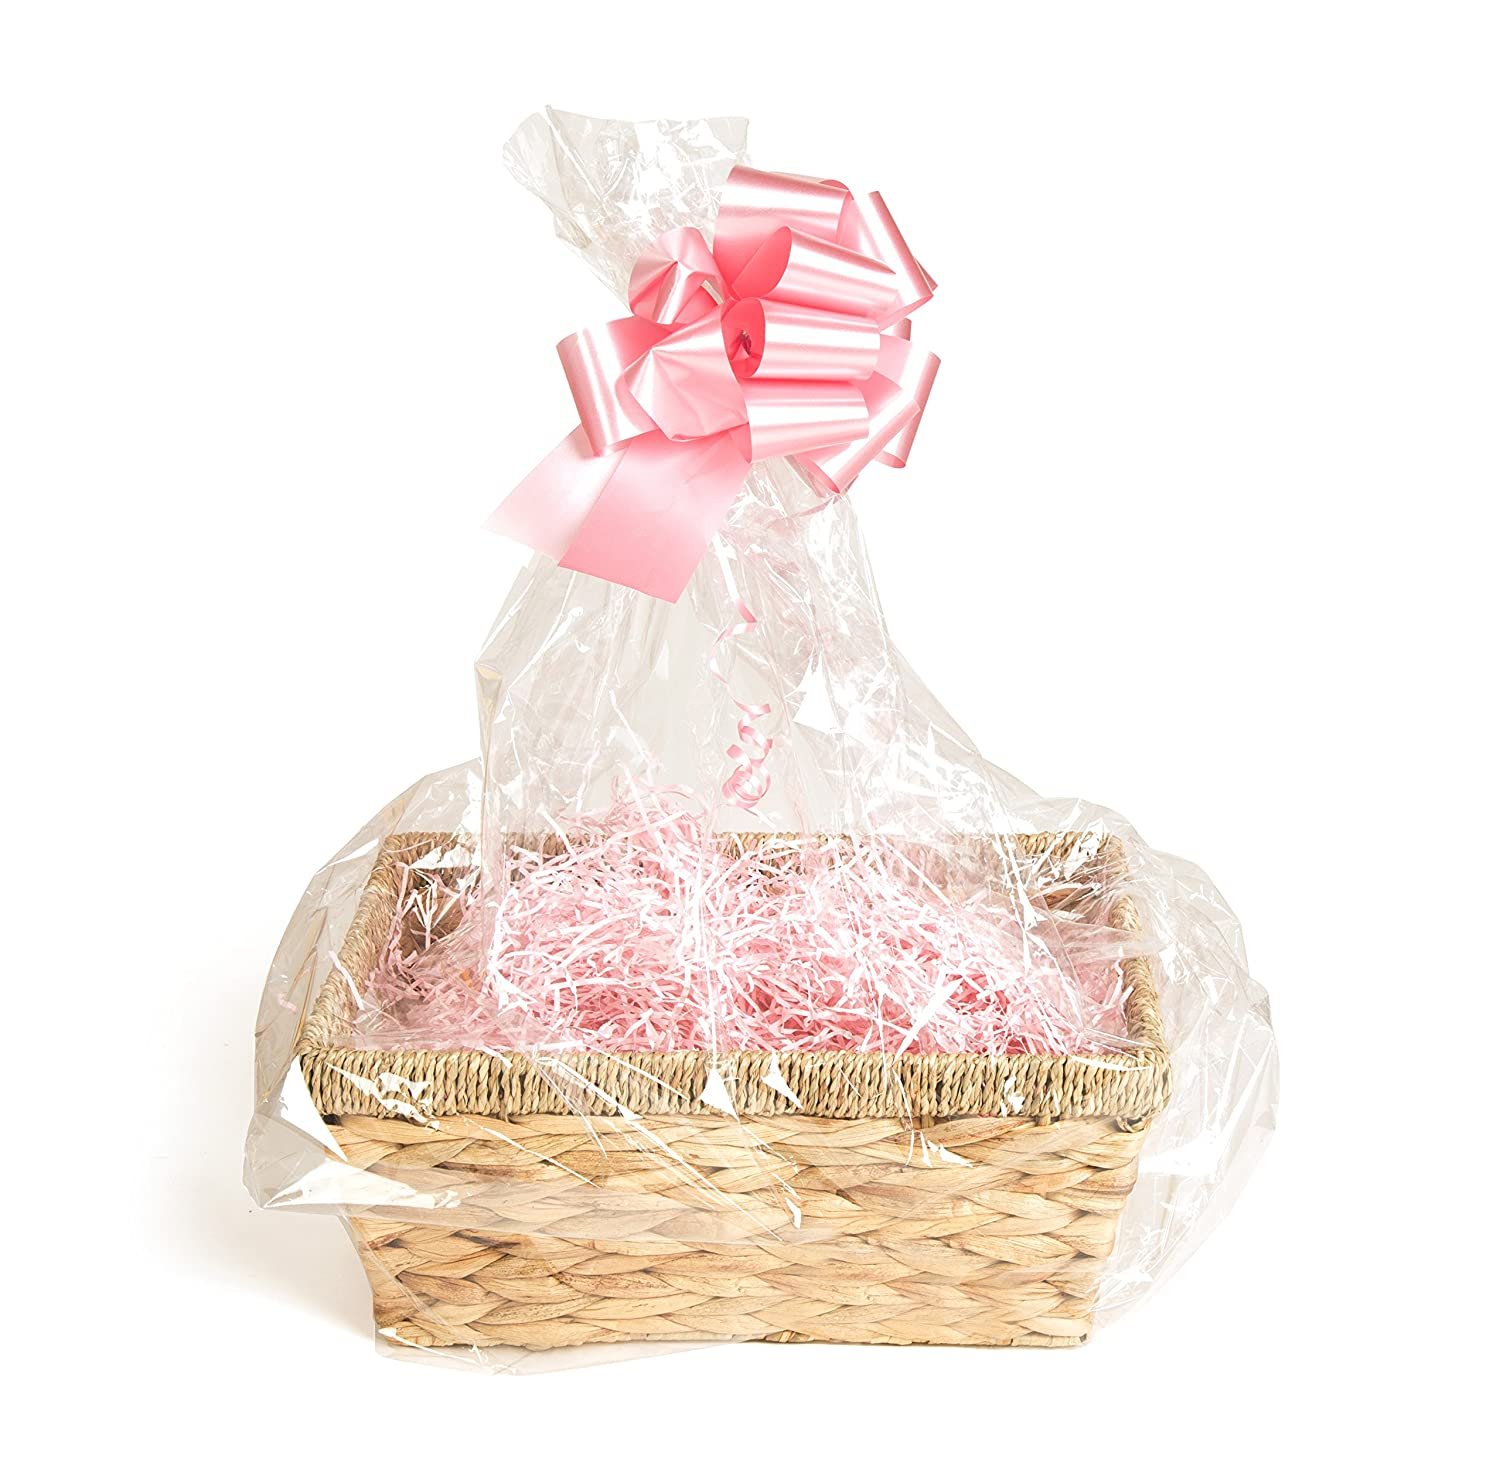 Your Gift Basket - Natural Straw Basket & DIY Hamper Kit with Pink Shred, Pink Bow and Clear Gift Wrap